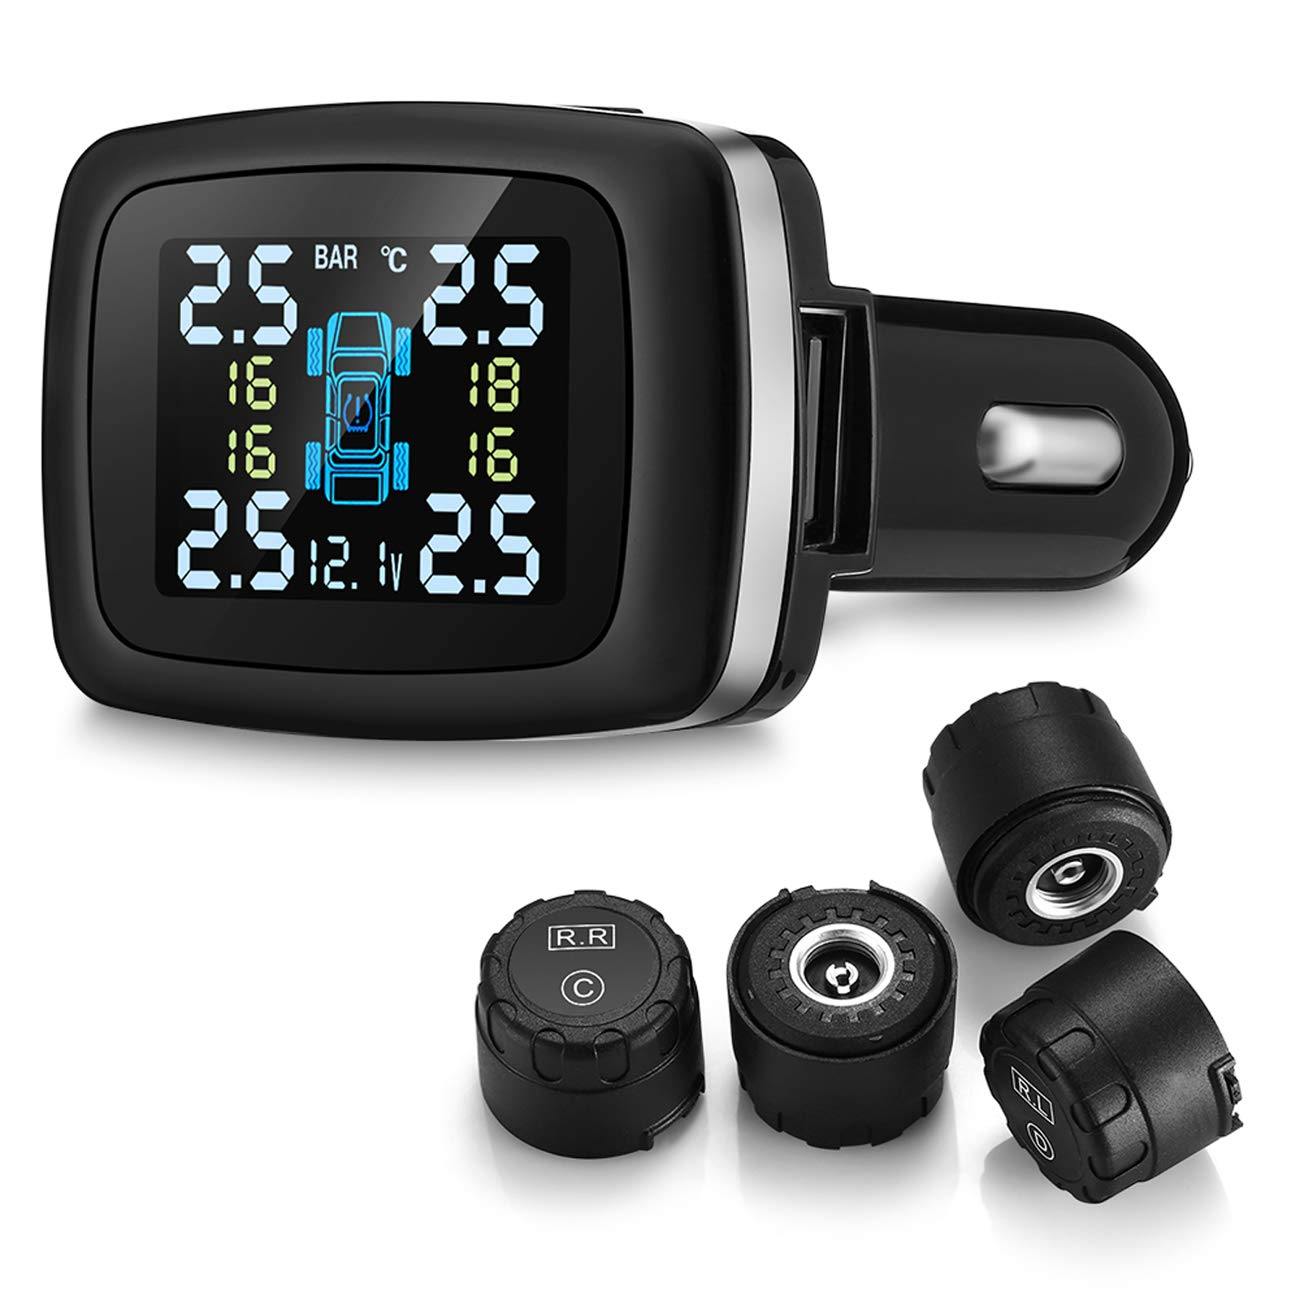 Beipuit Wireless Tire Pressure Monitoring System (TPMS), with 4 External Cap Sensors (Cigarette Lighter Plug with 5V/1.5A Charging) by Beipuit